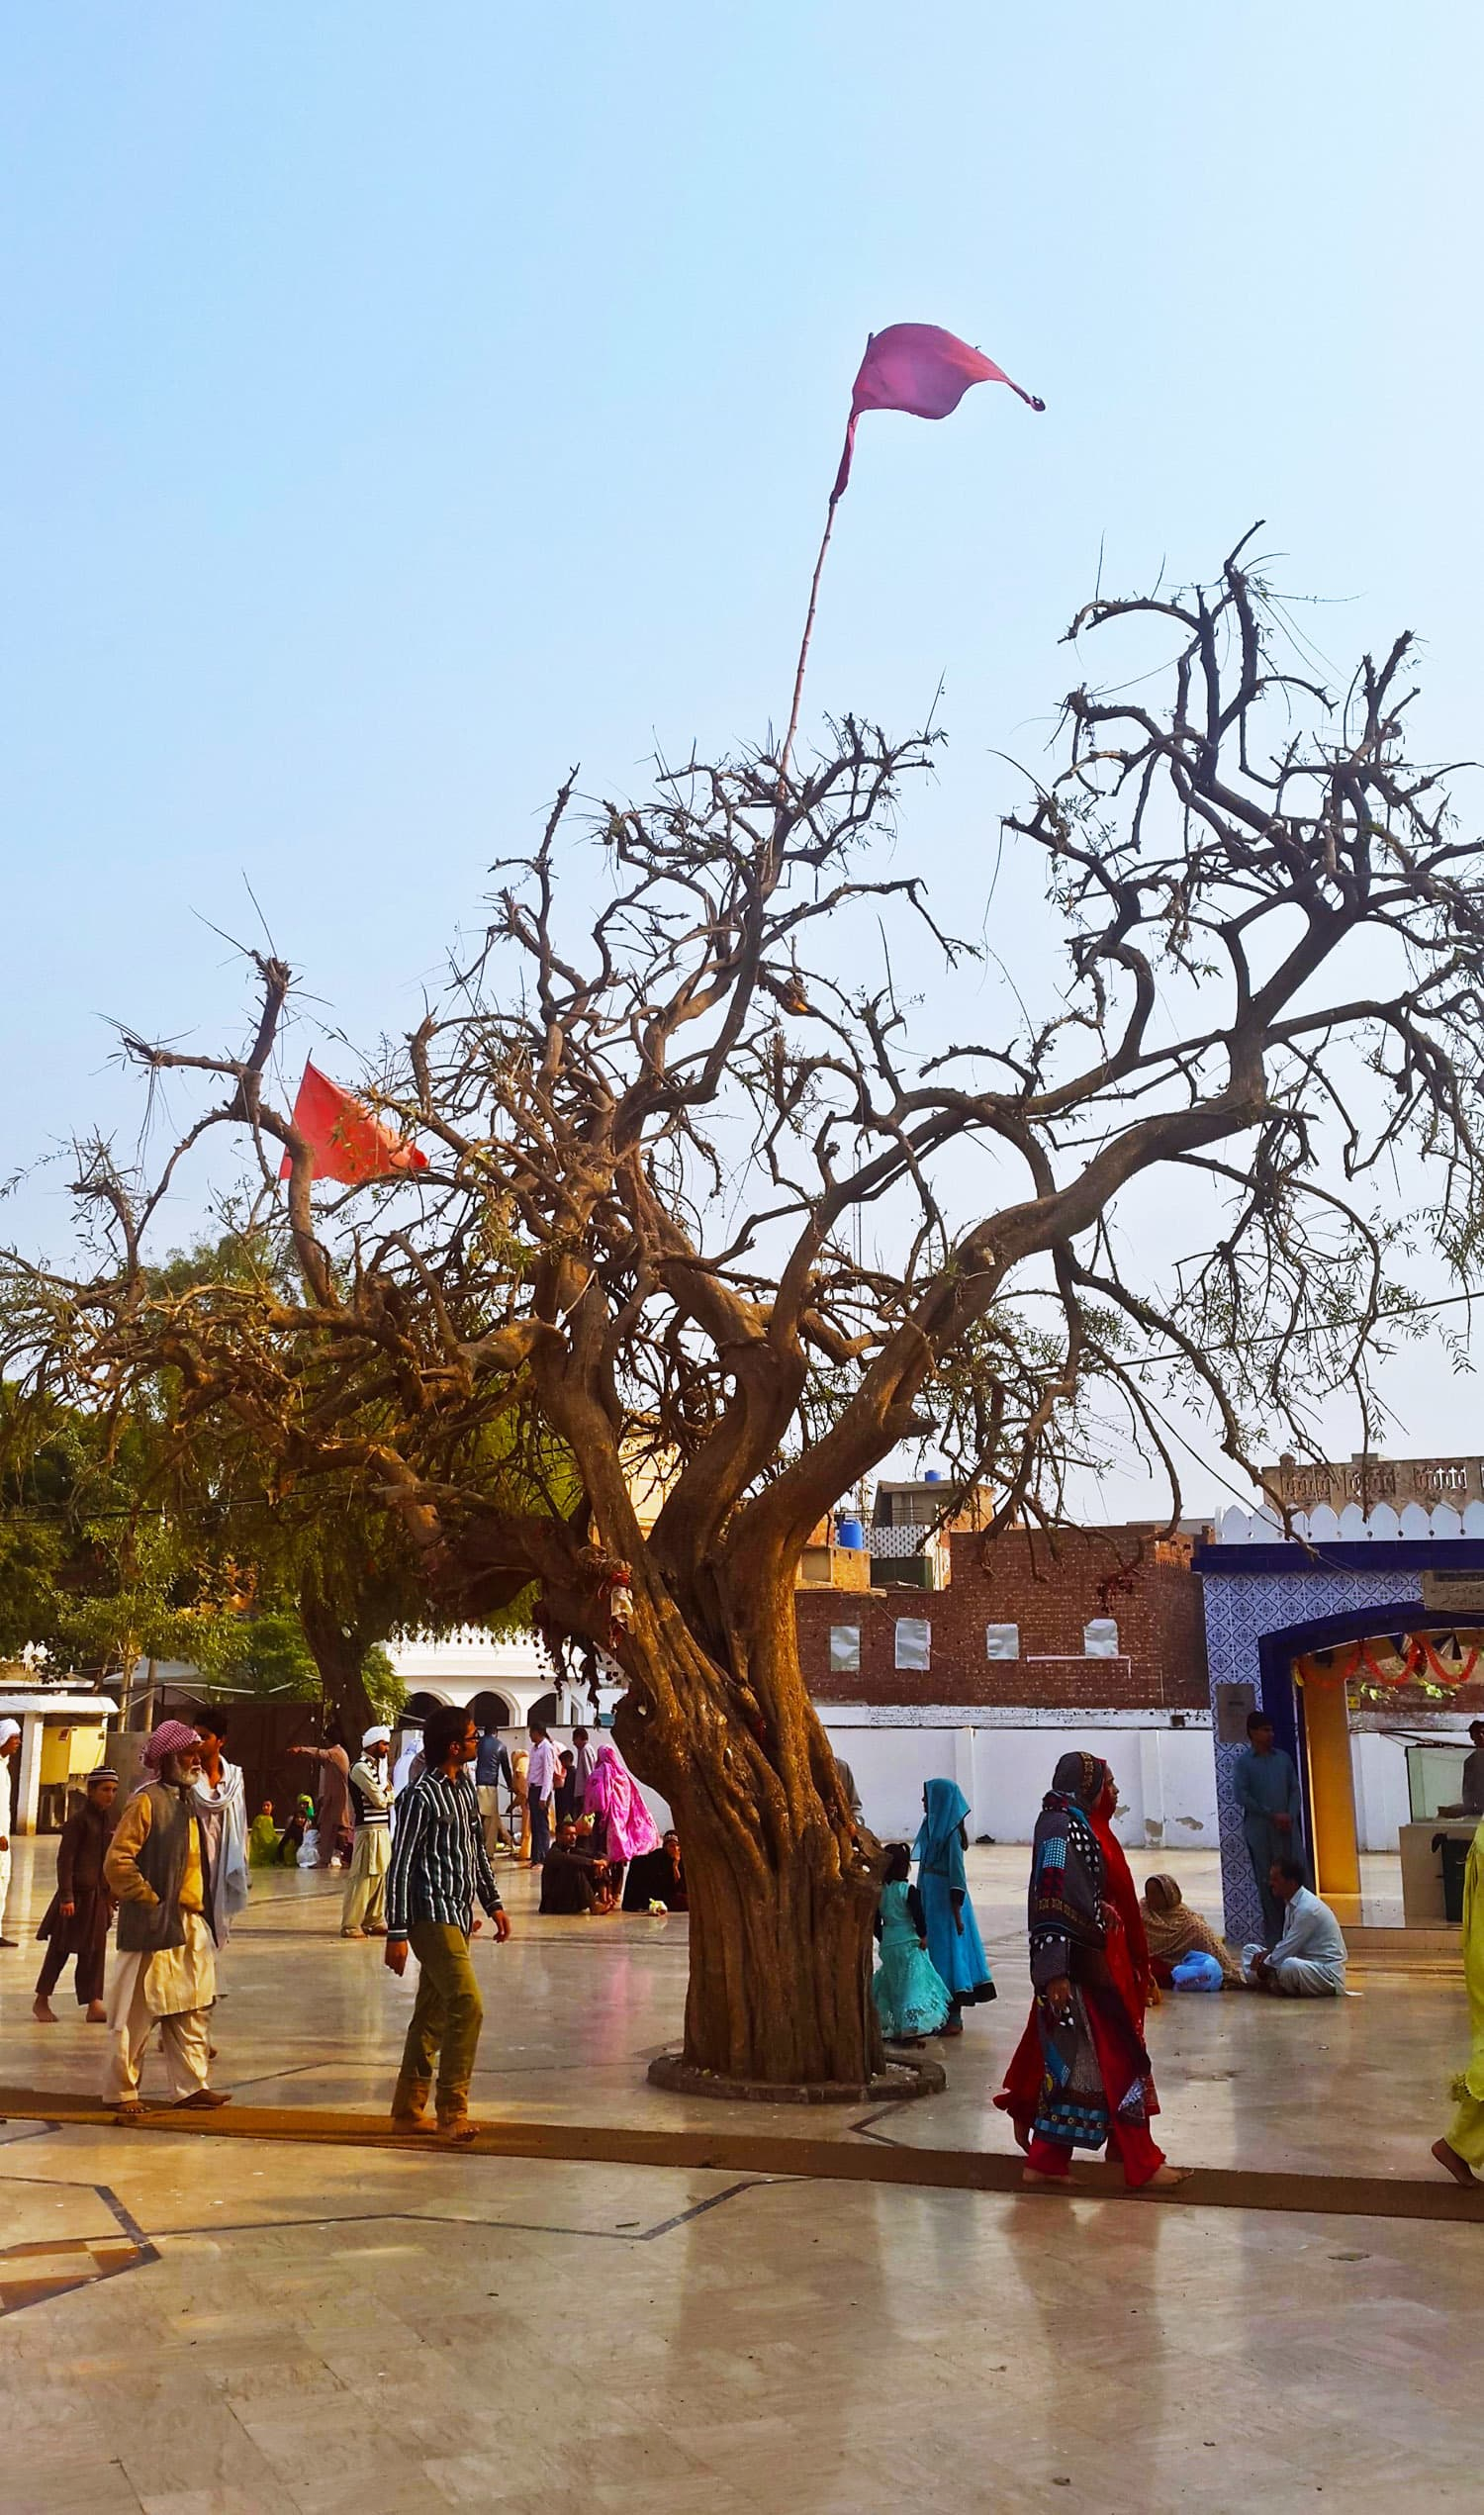 The Tree of Wishes next to Bulleh Shah's tomb.